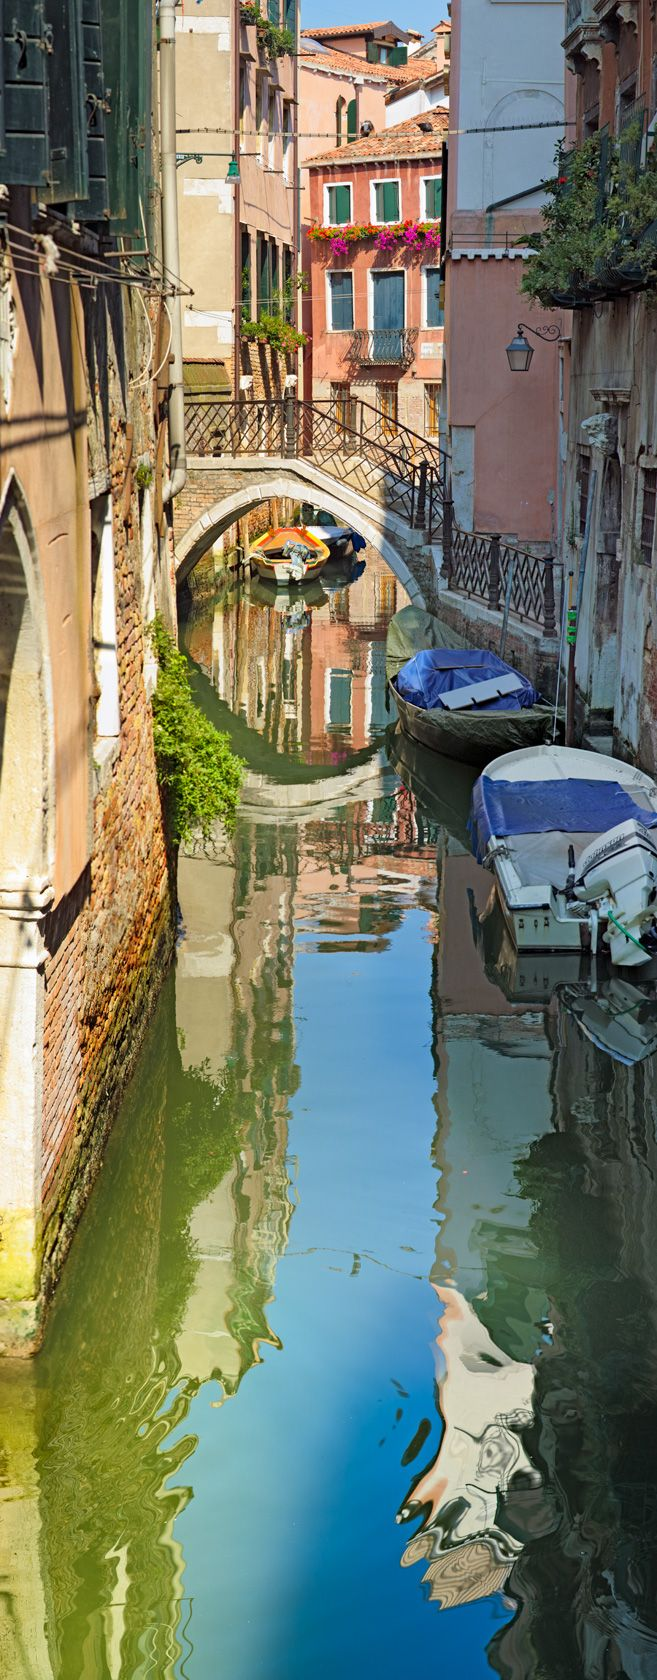 Venice I want to go see this place one day. Please check out my website Thanks. www.photopix.co.nz